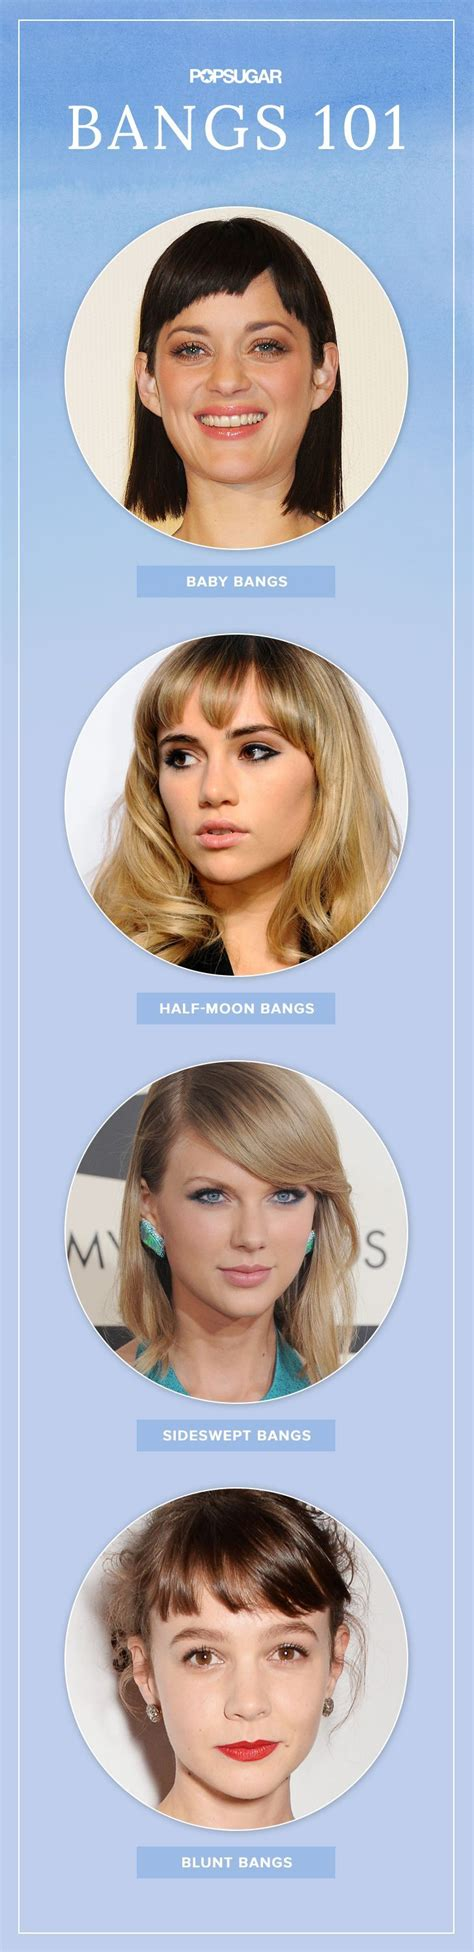 half whispy bangs cut on a slant for oval shaped faces 14 haircut buzzwords you need to know before seeing your